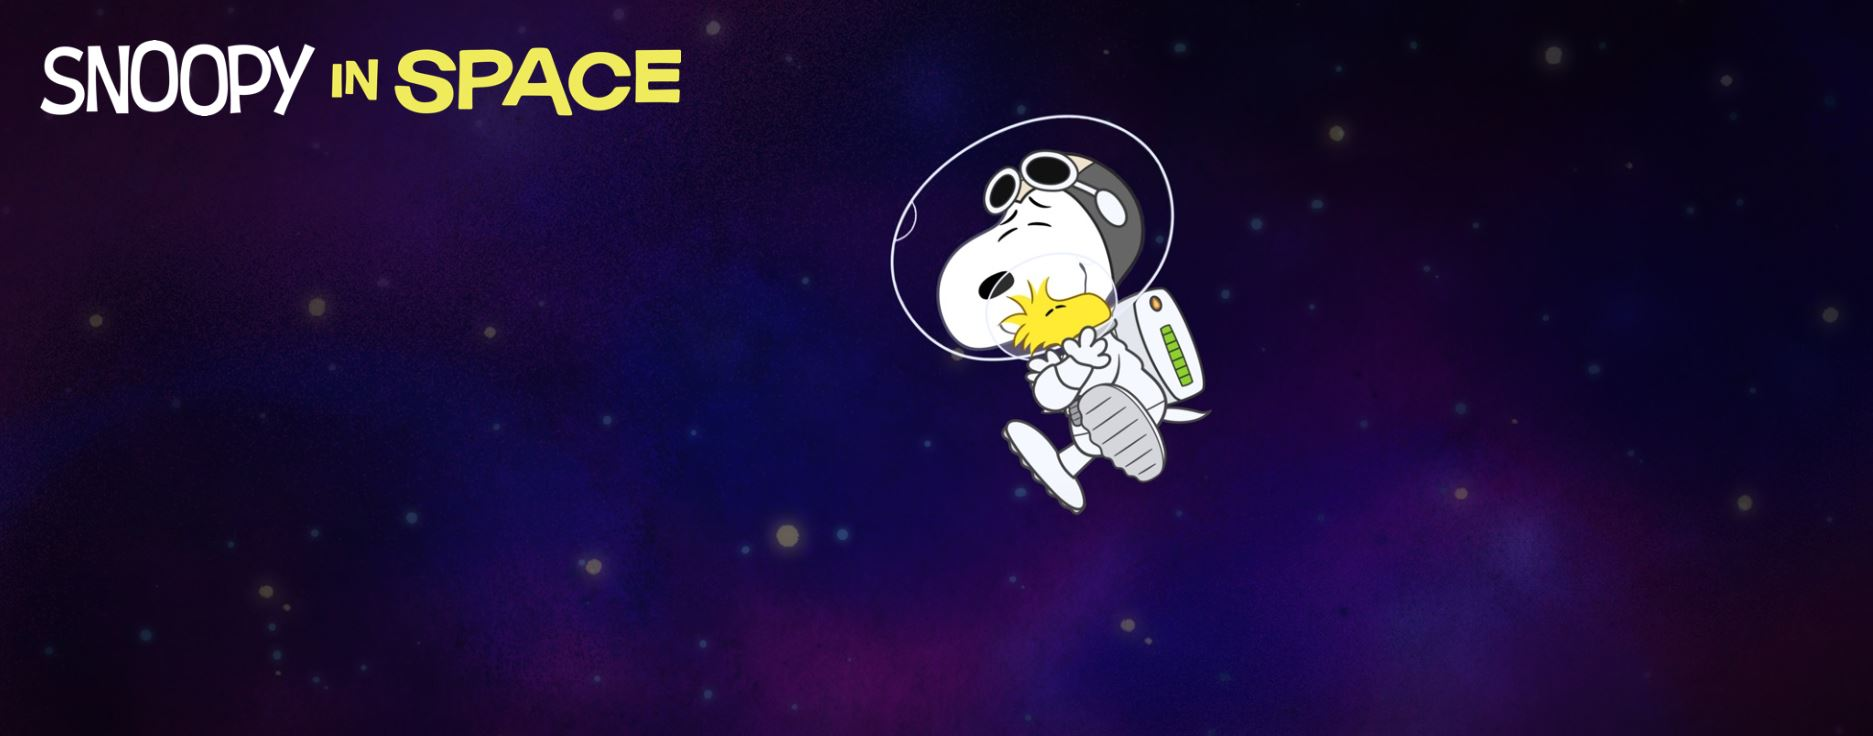 title card of snoopy in space from apple tv+